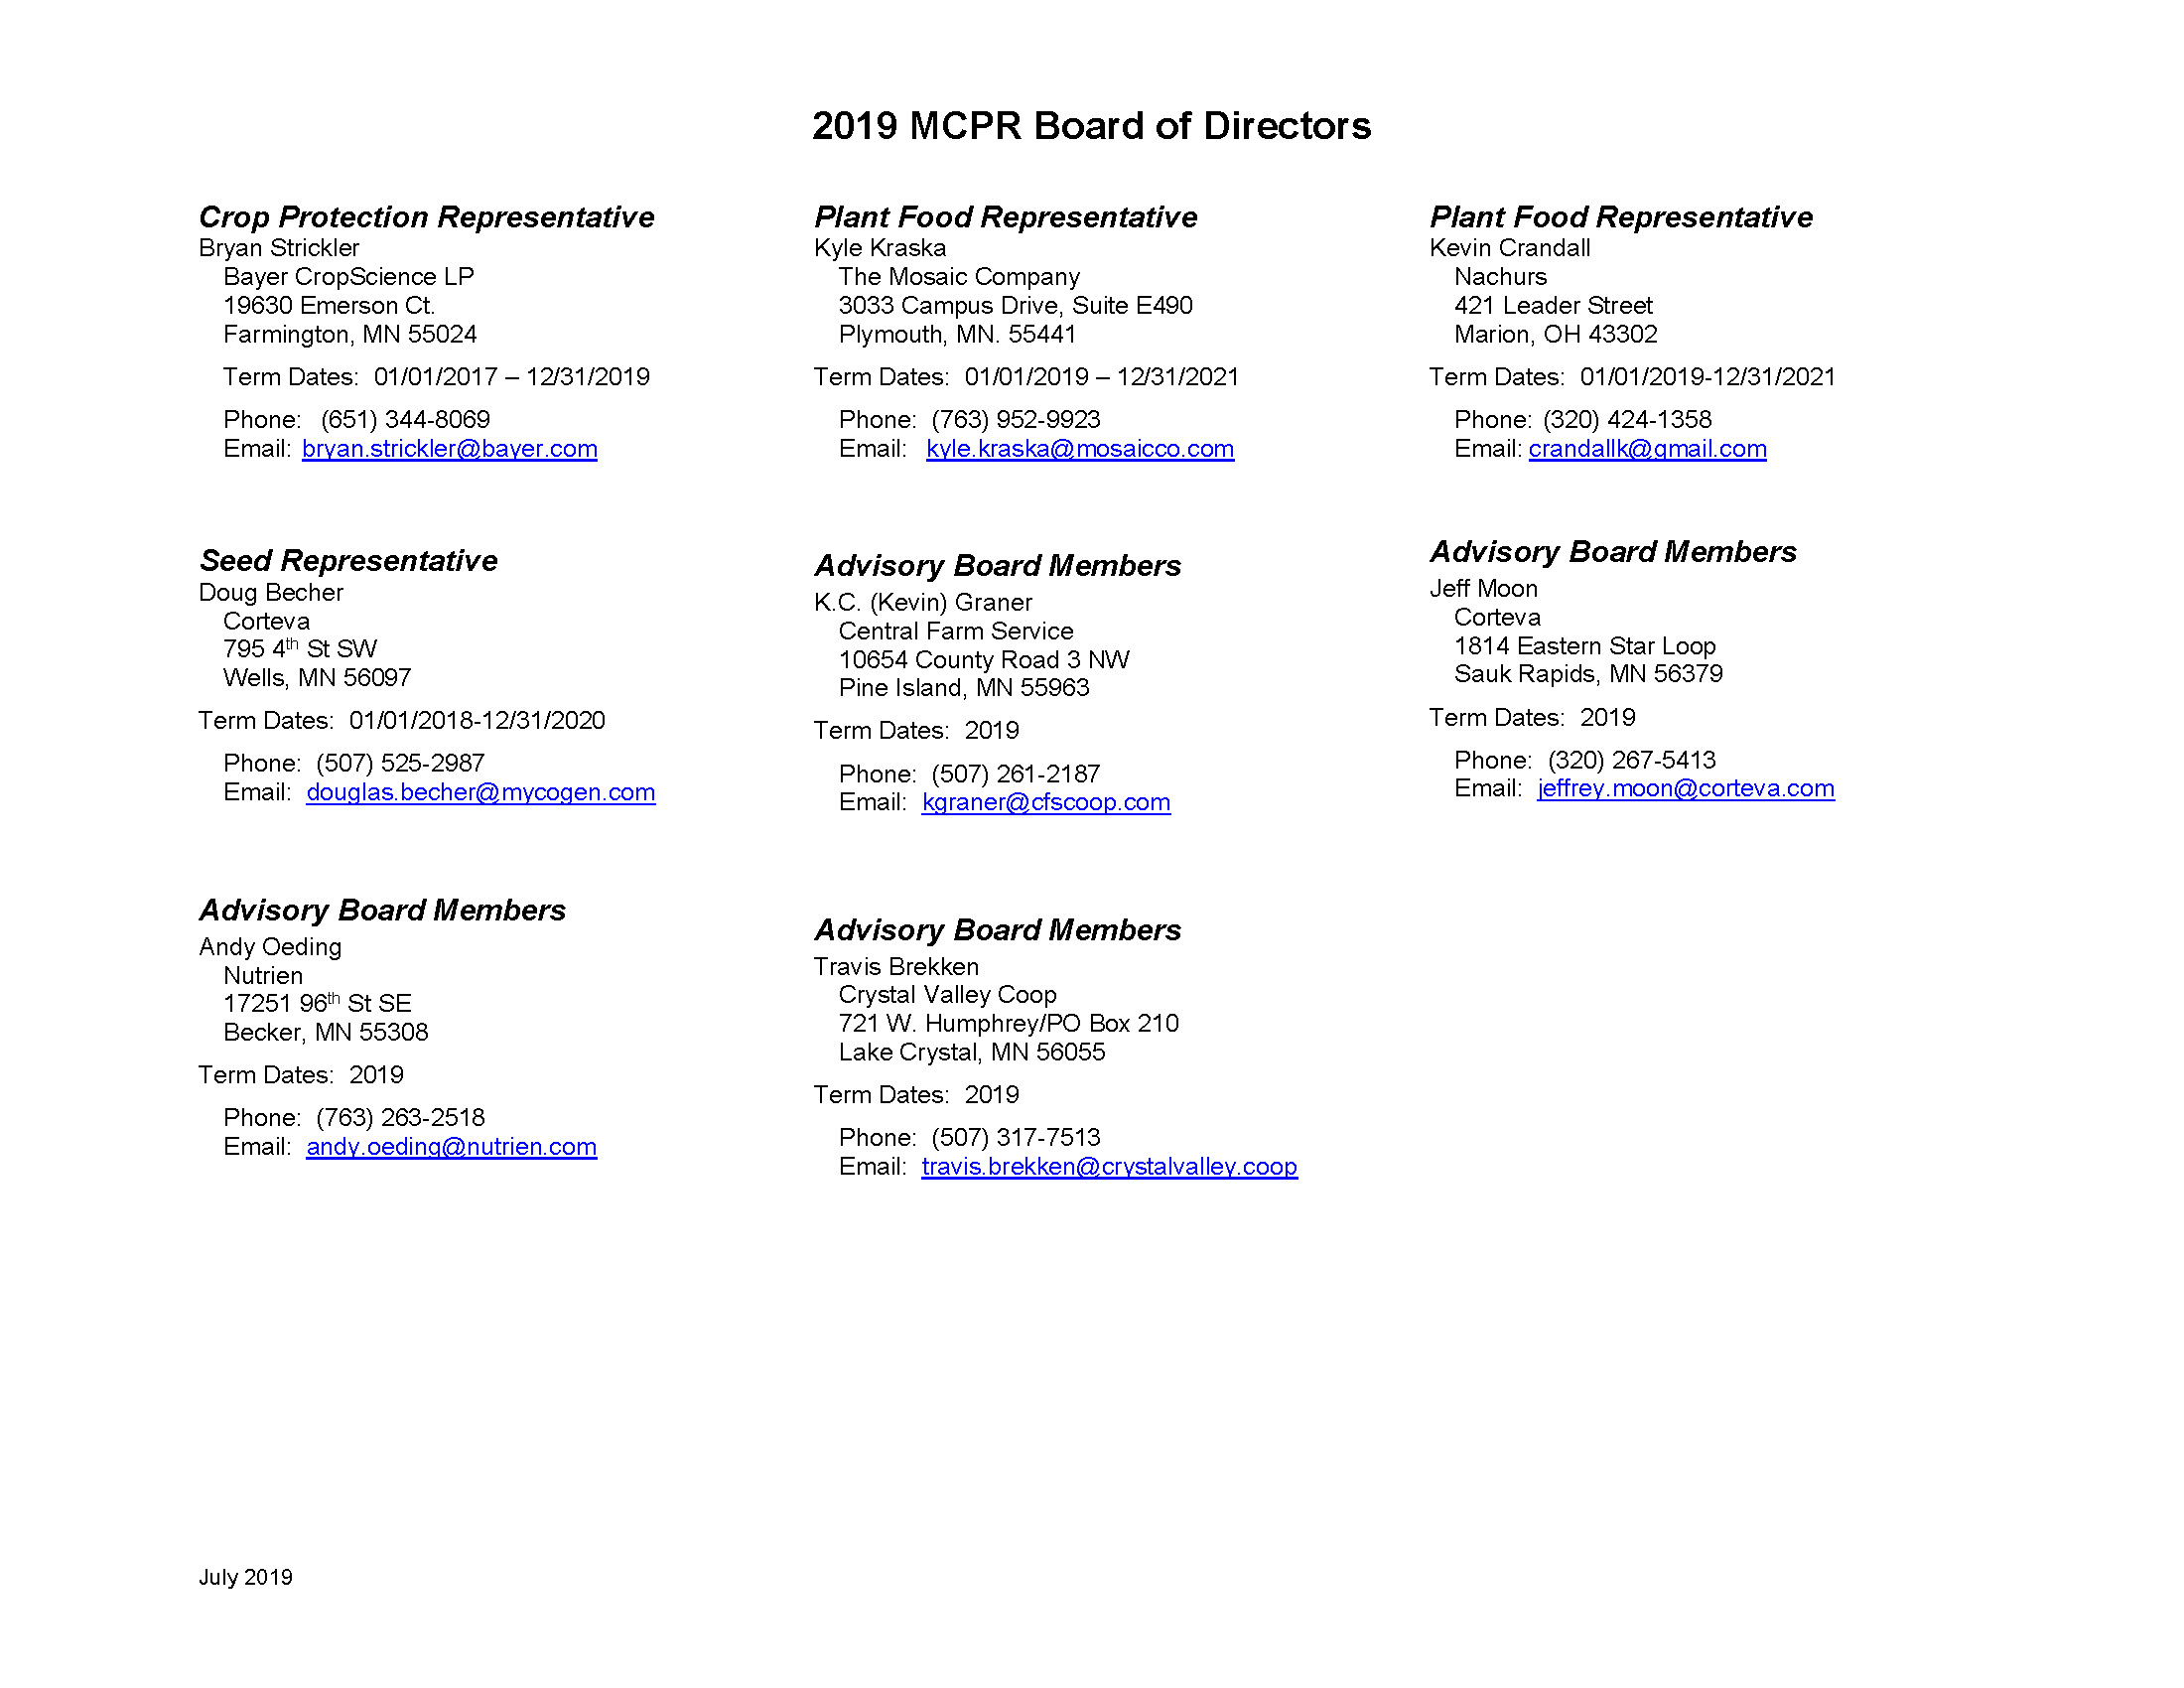 2019 MCPR Board of Directors_July_2019_Page_2